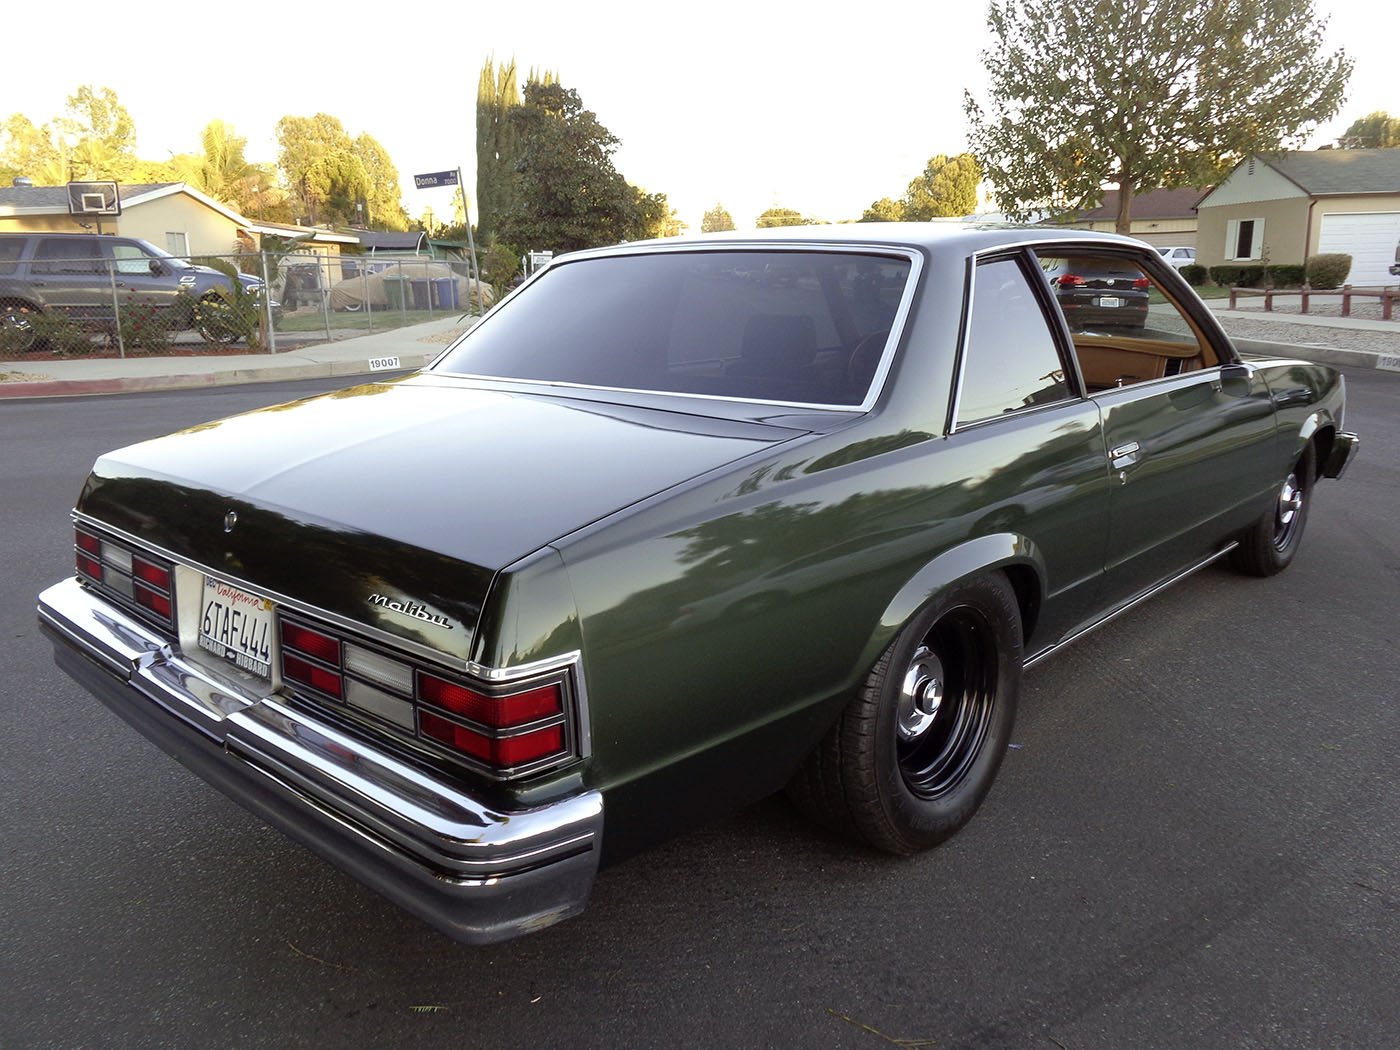 for sale 1980 chevy malibu with a turbo lsx. Black Bedroom Furniture Sets. Home Design Ideas